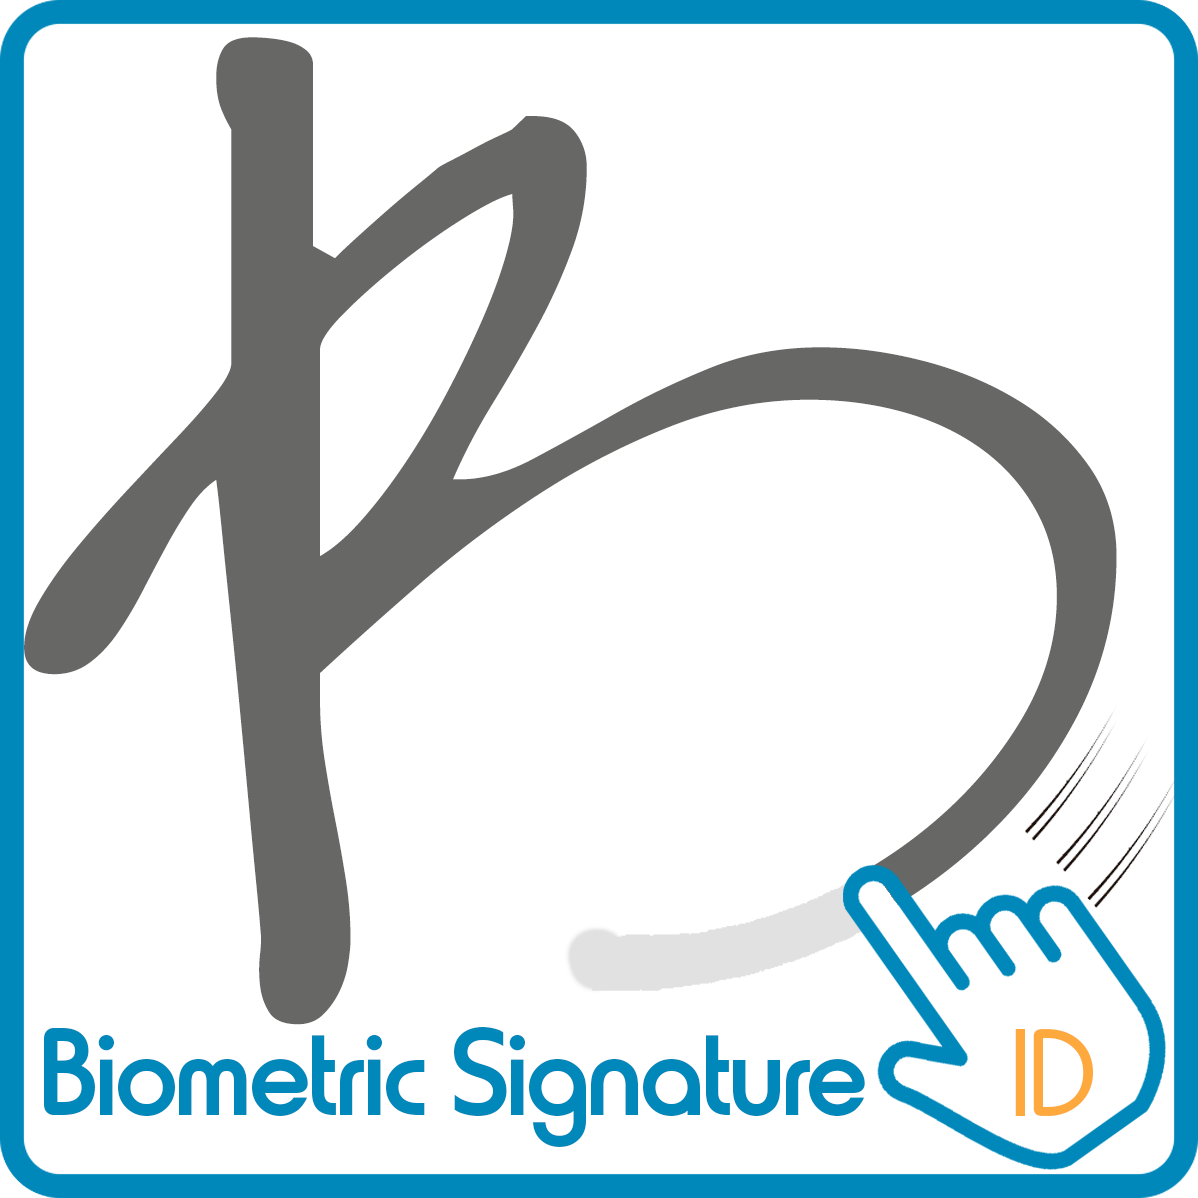 Biometric Signature ID